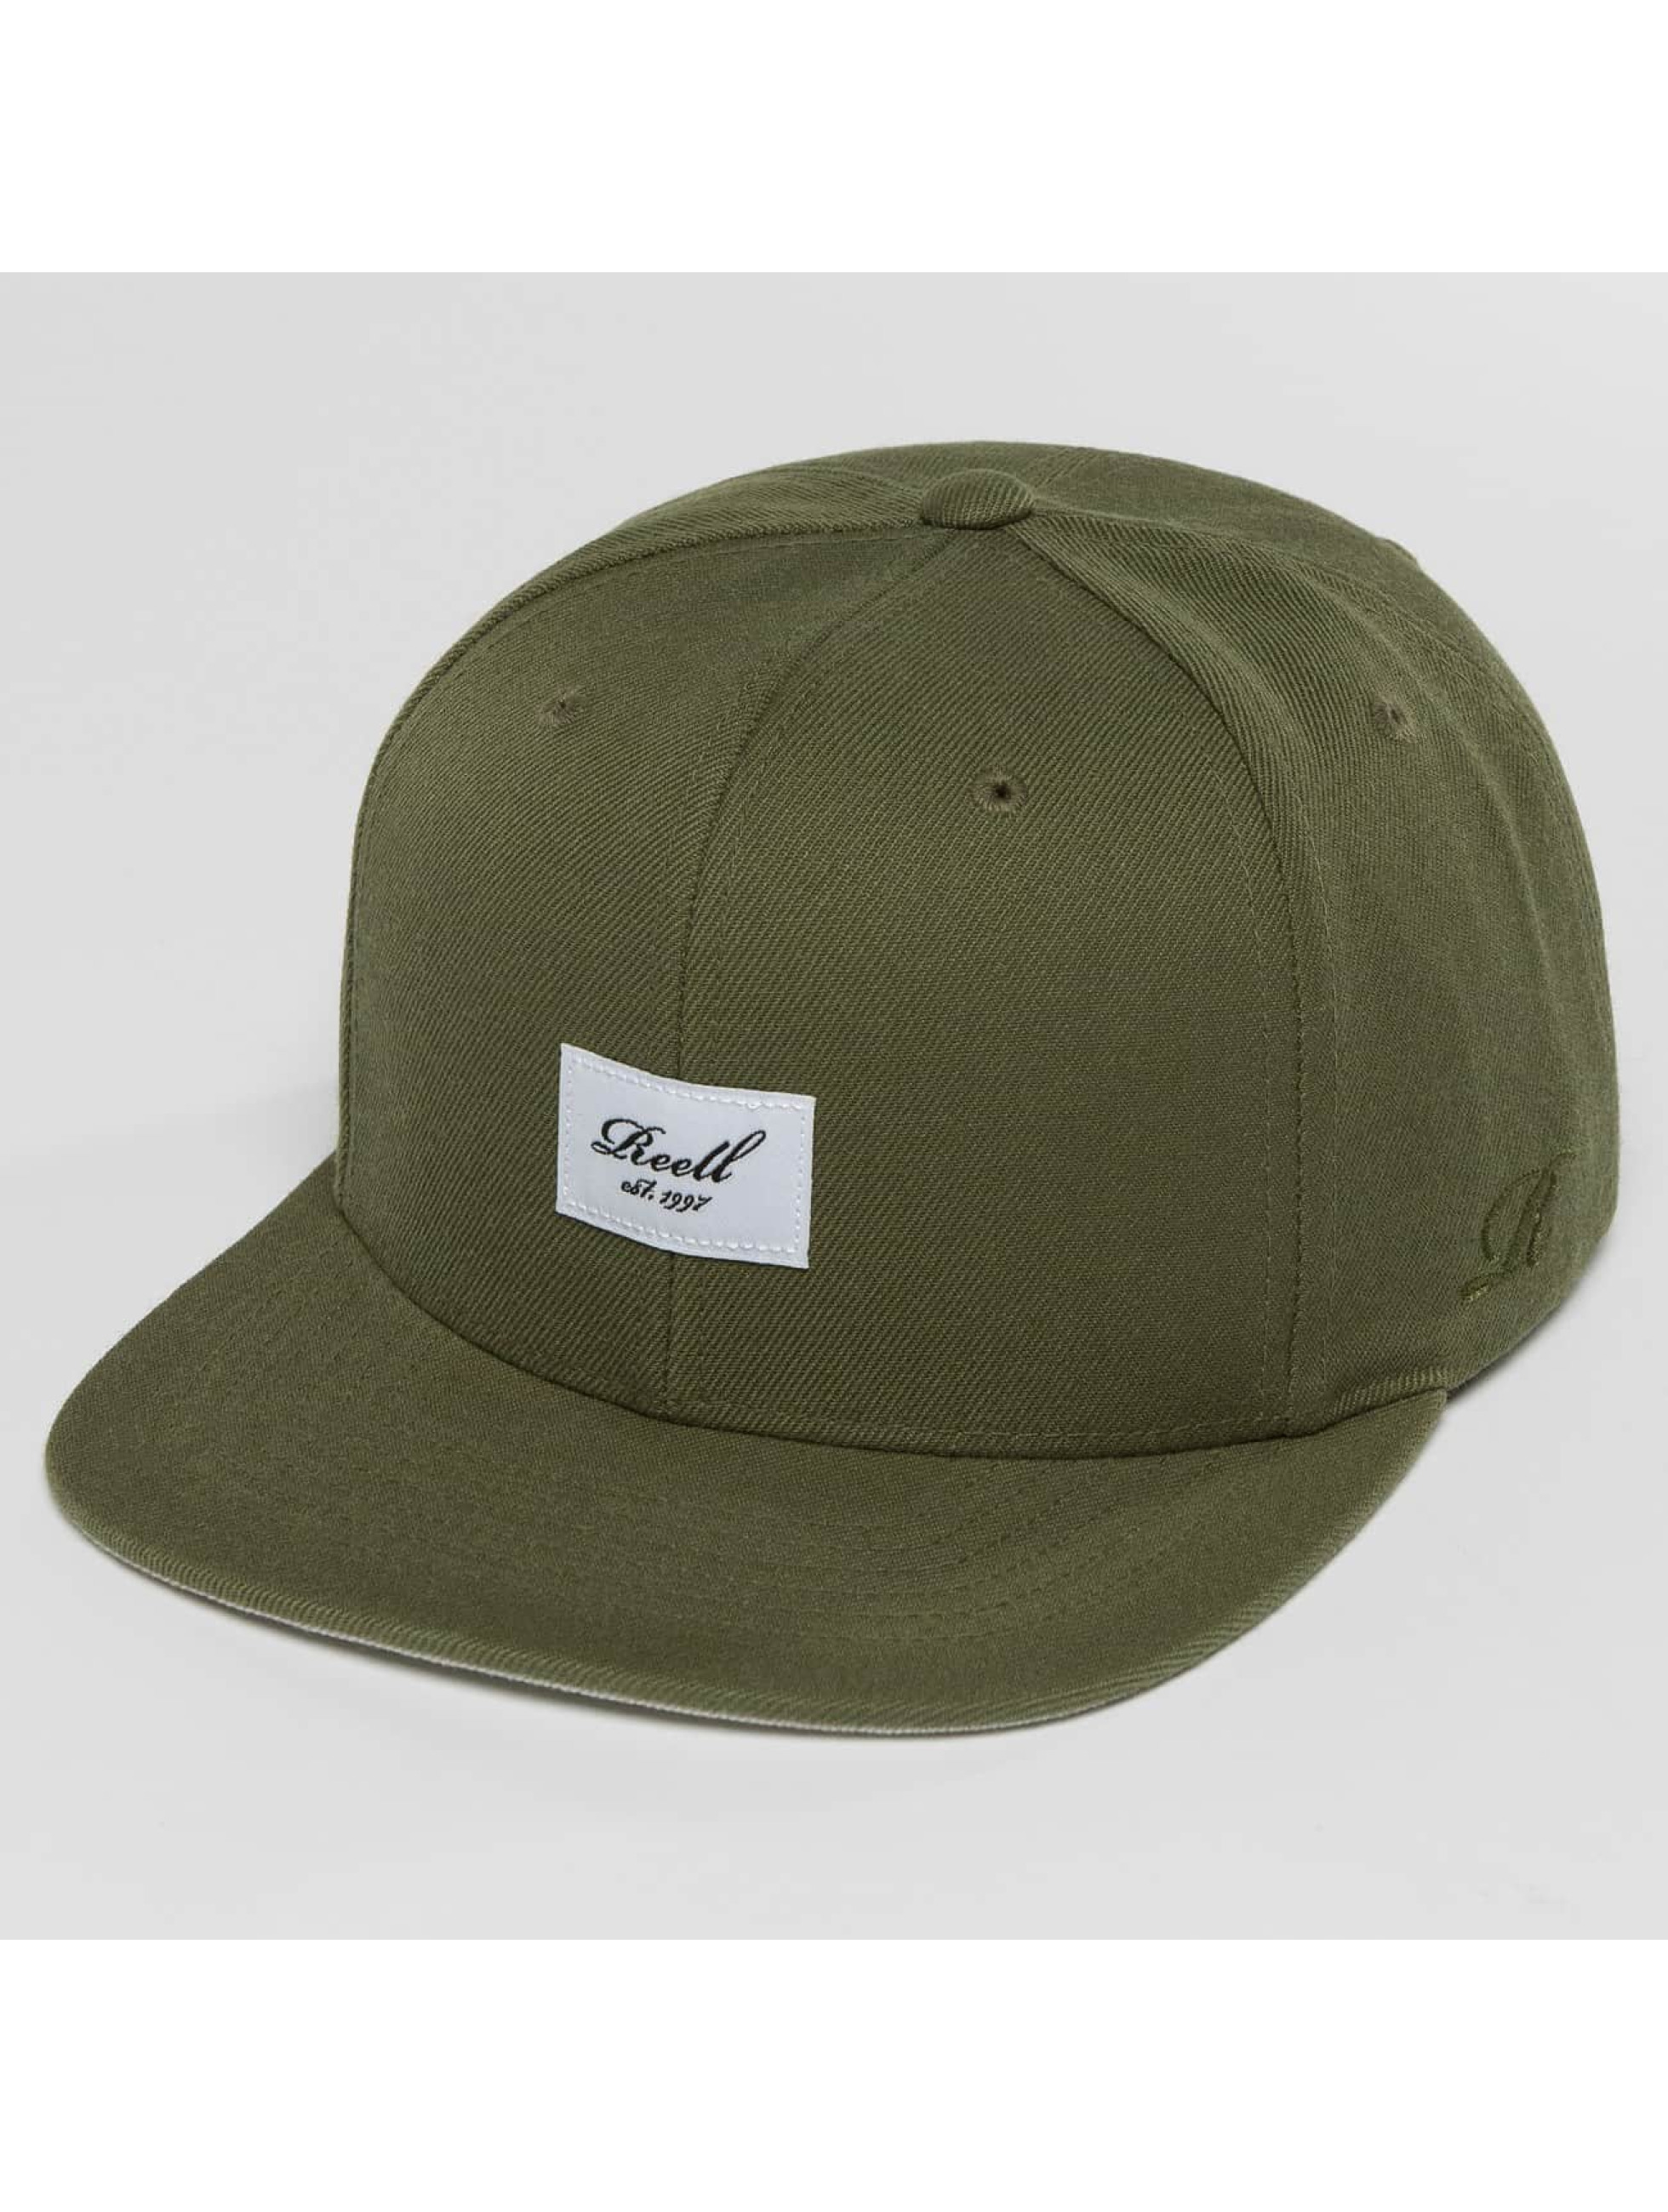 Reell Jeans Casquette Snapback & Strapback Base olive